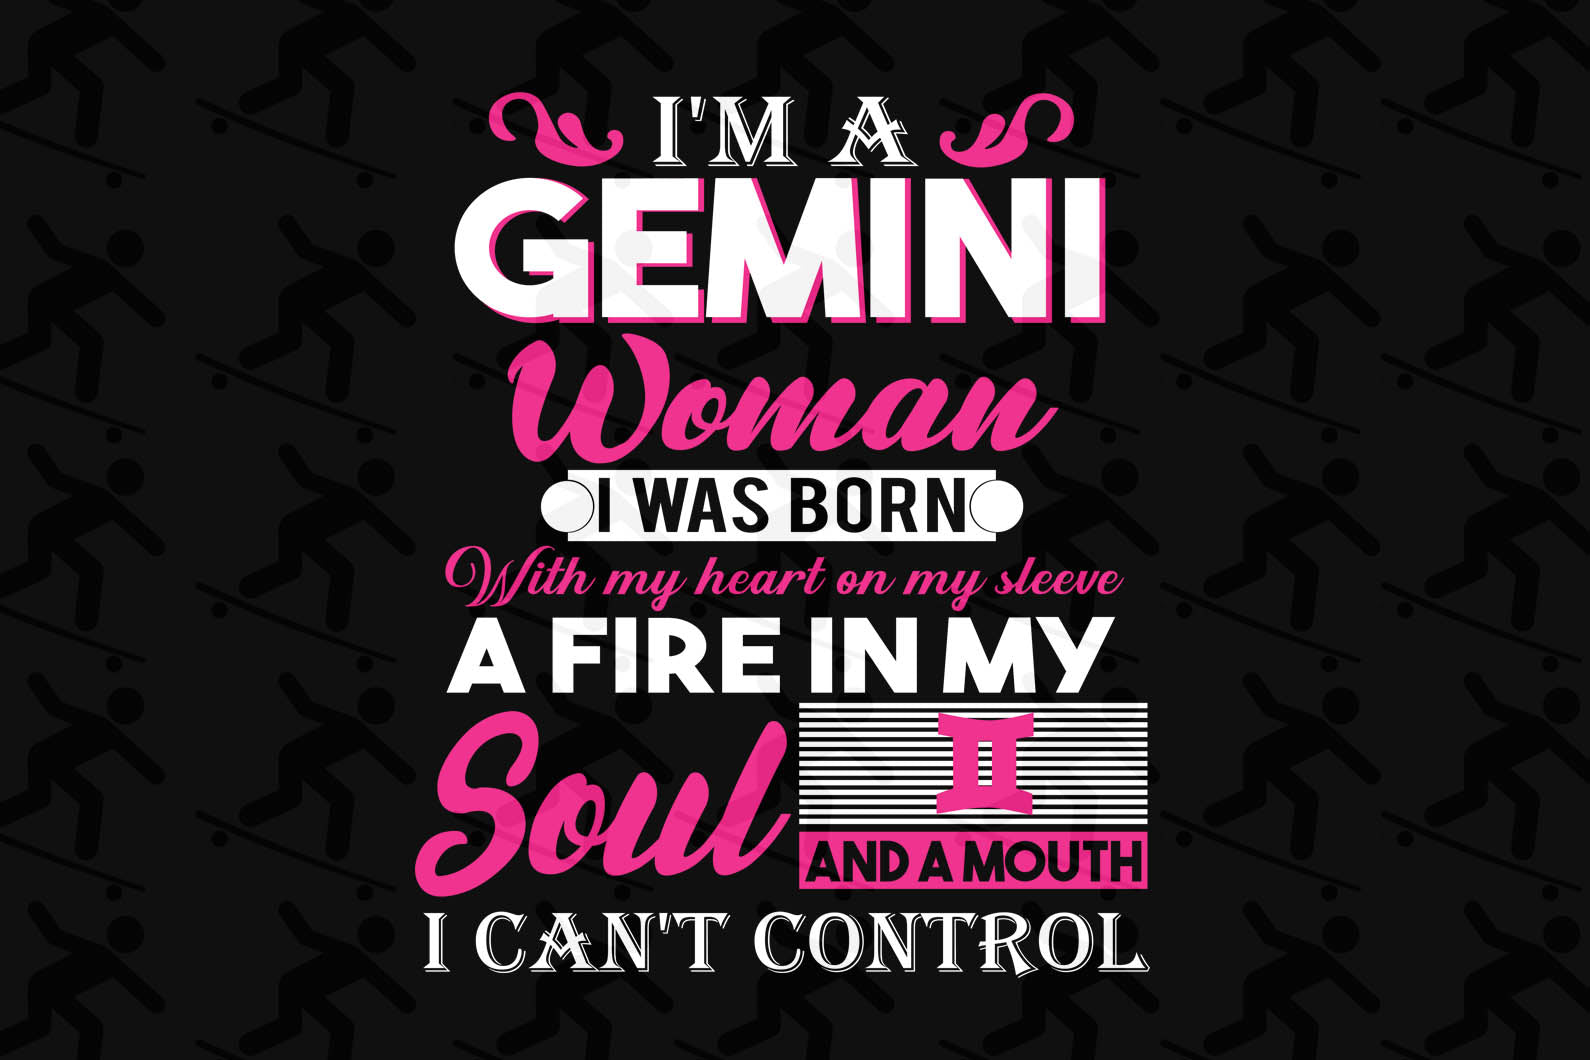 I am gemini woman,Gemini girl svg, Gemini girl gift, Gemini girl shirt, Gemini birthday, black girl, sexy girl, girl gift, girl shirt, svg cut files, svg clipart, silhouette svg, cricut svg files, decal and vinyl,